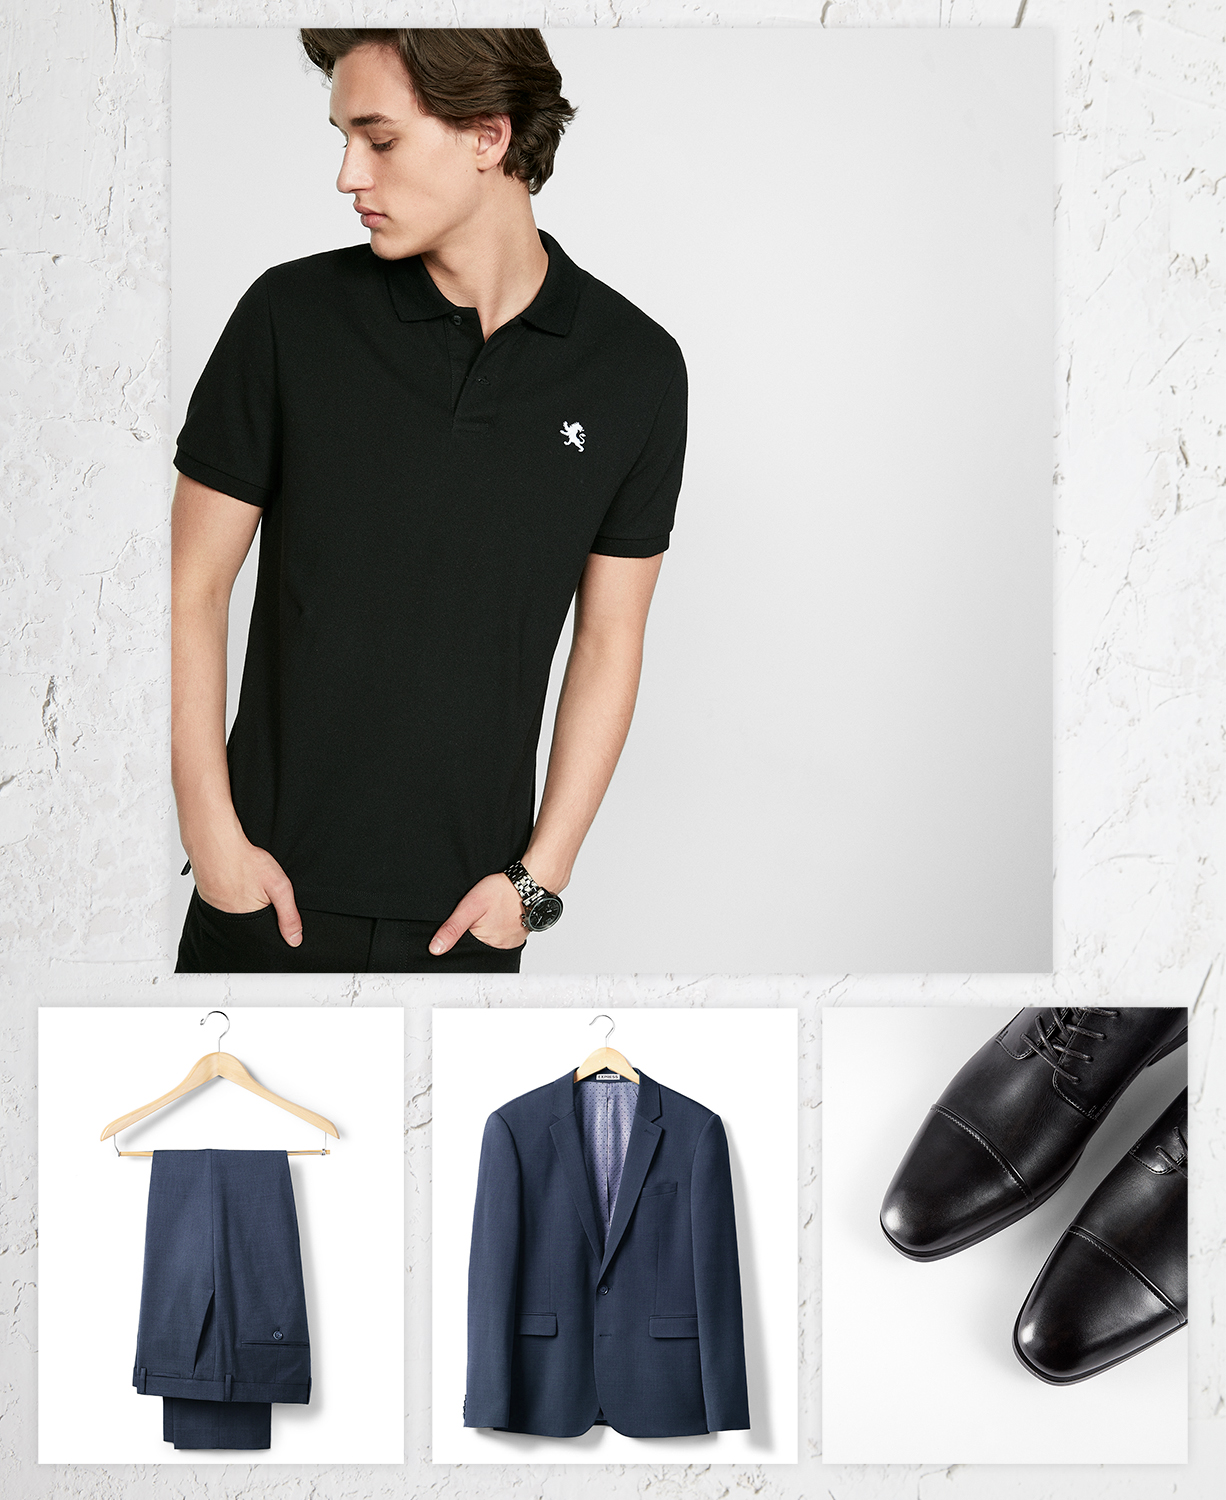 black-small-lion-polo-navy-suit-black-dress-shoes